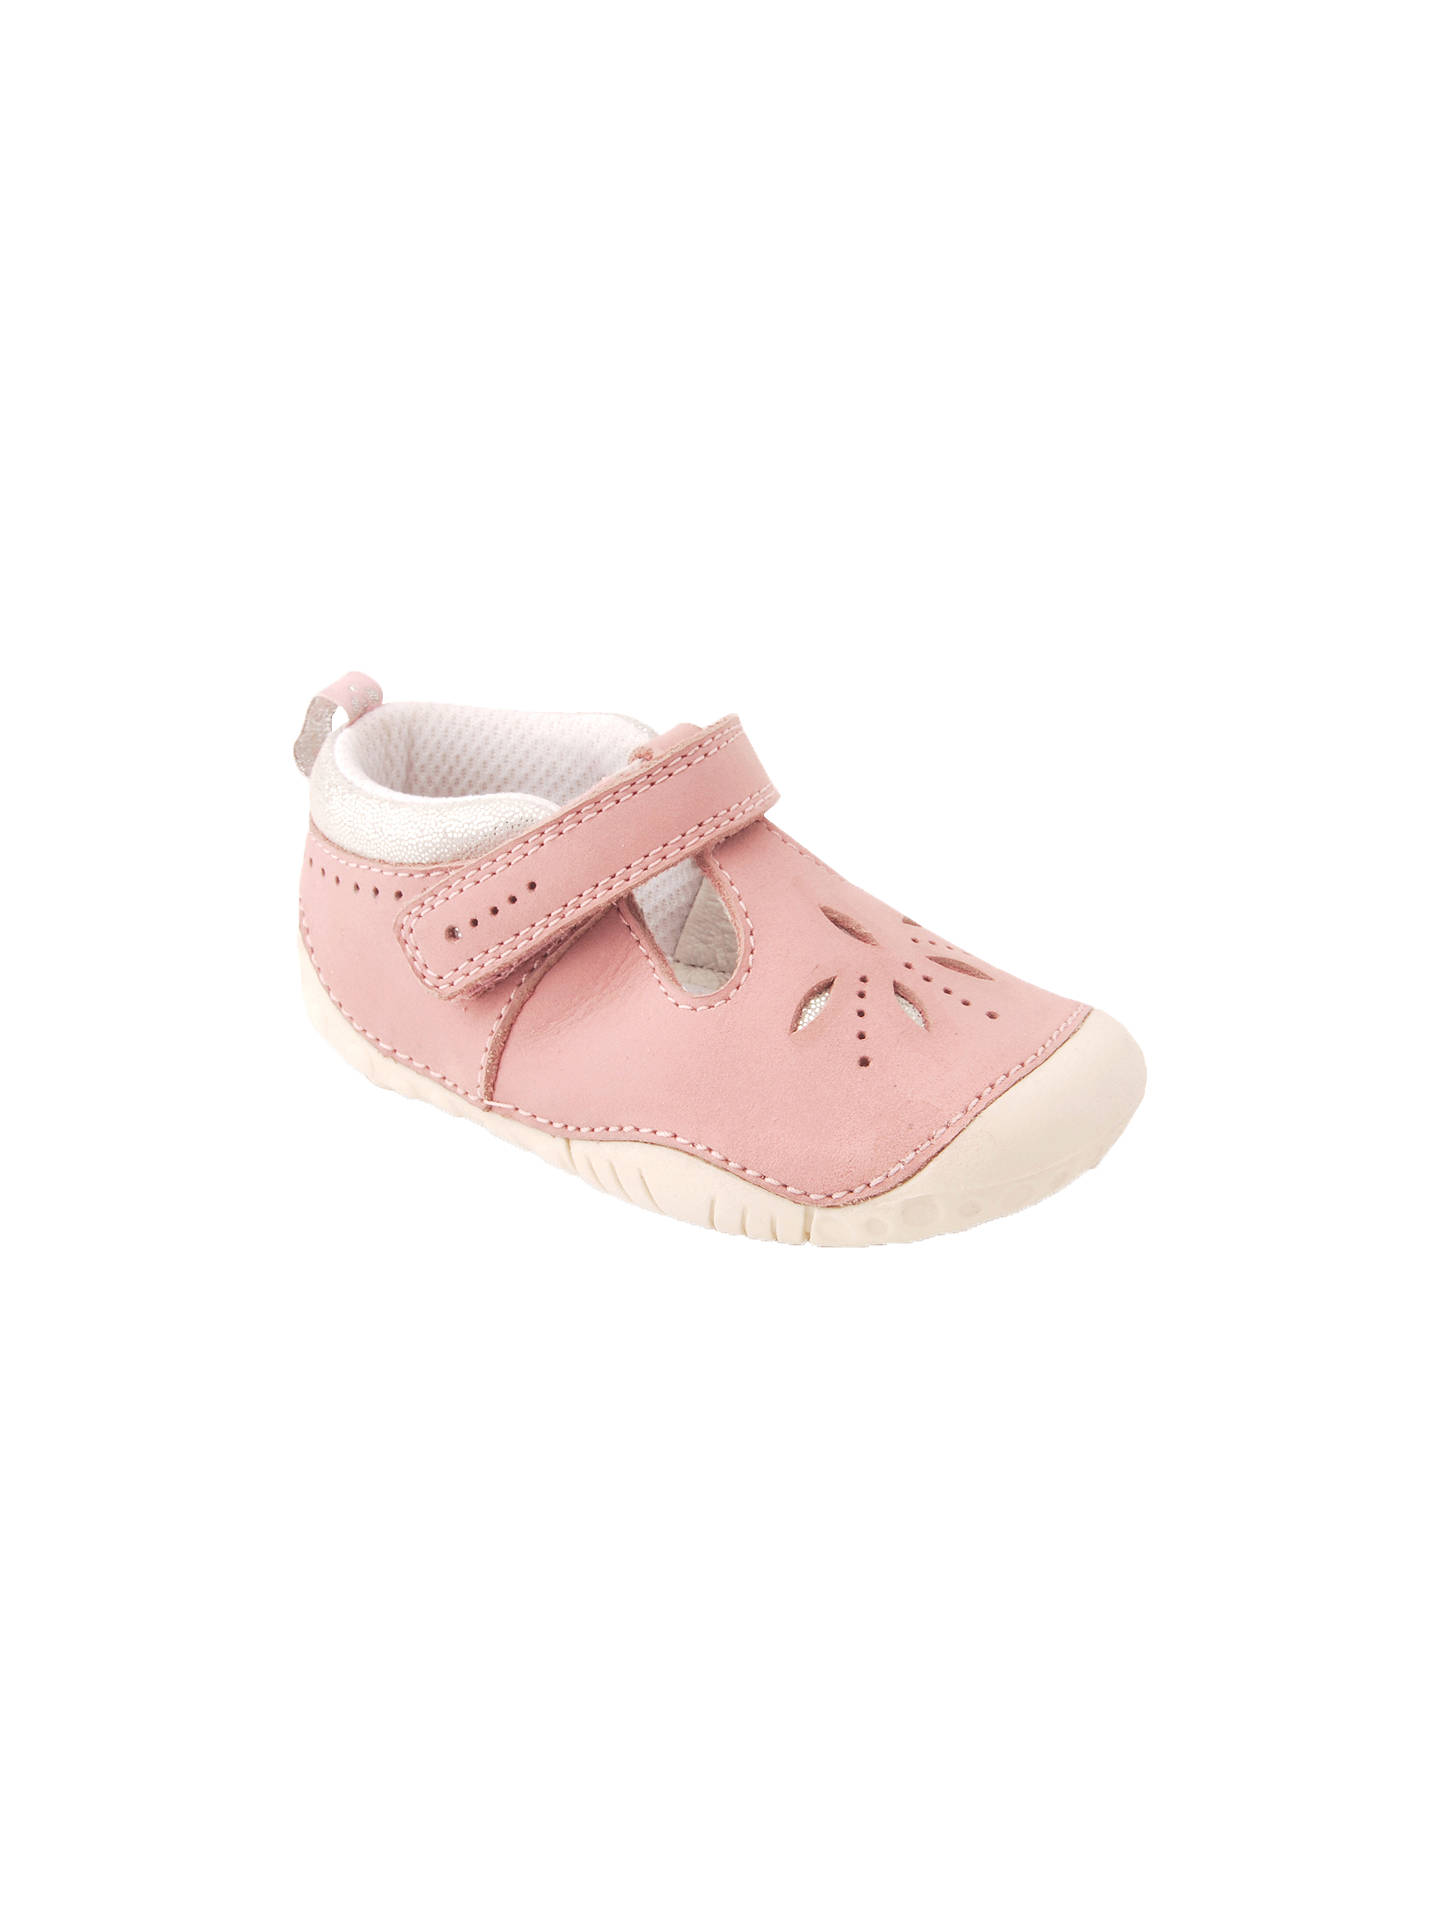 f4b524d31fbb6 Buy Start-rite Baby Polly Rip-Tape Leather Pre Walker Shoes, Pink, ...